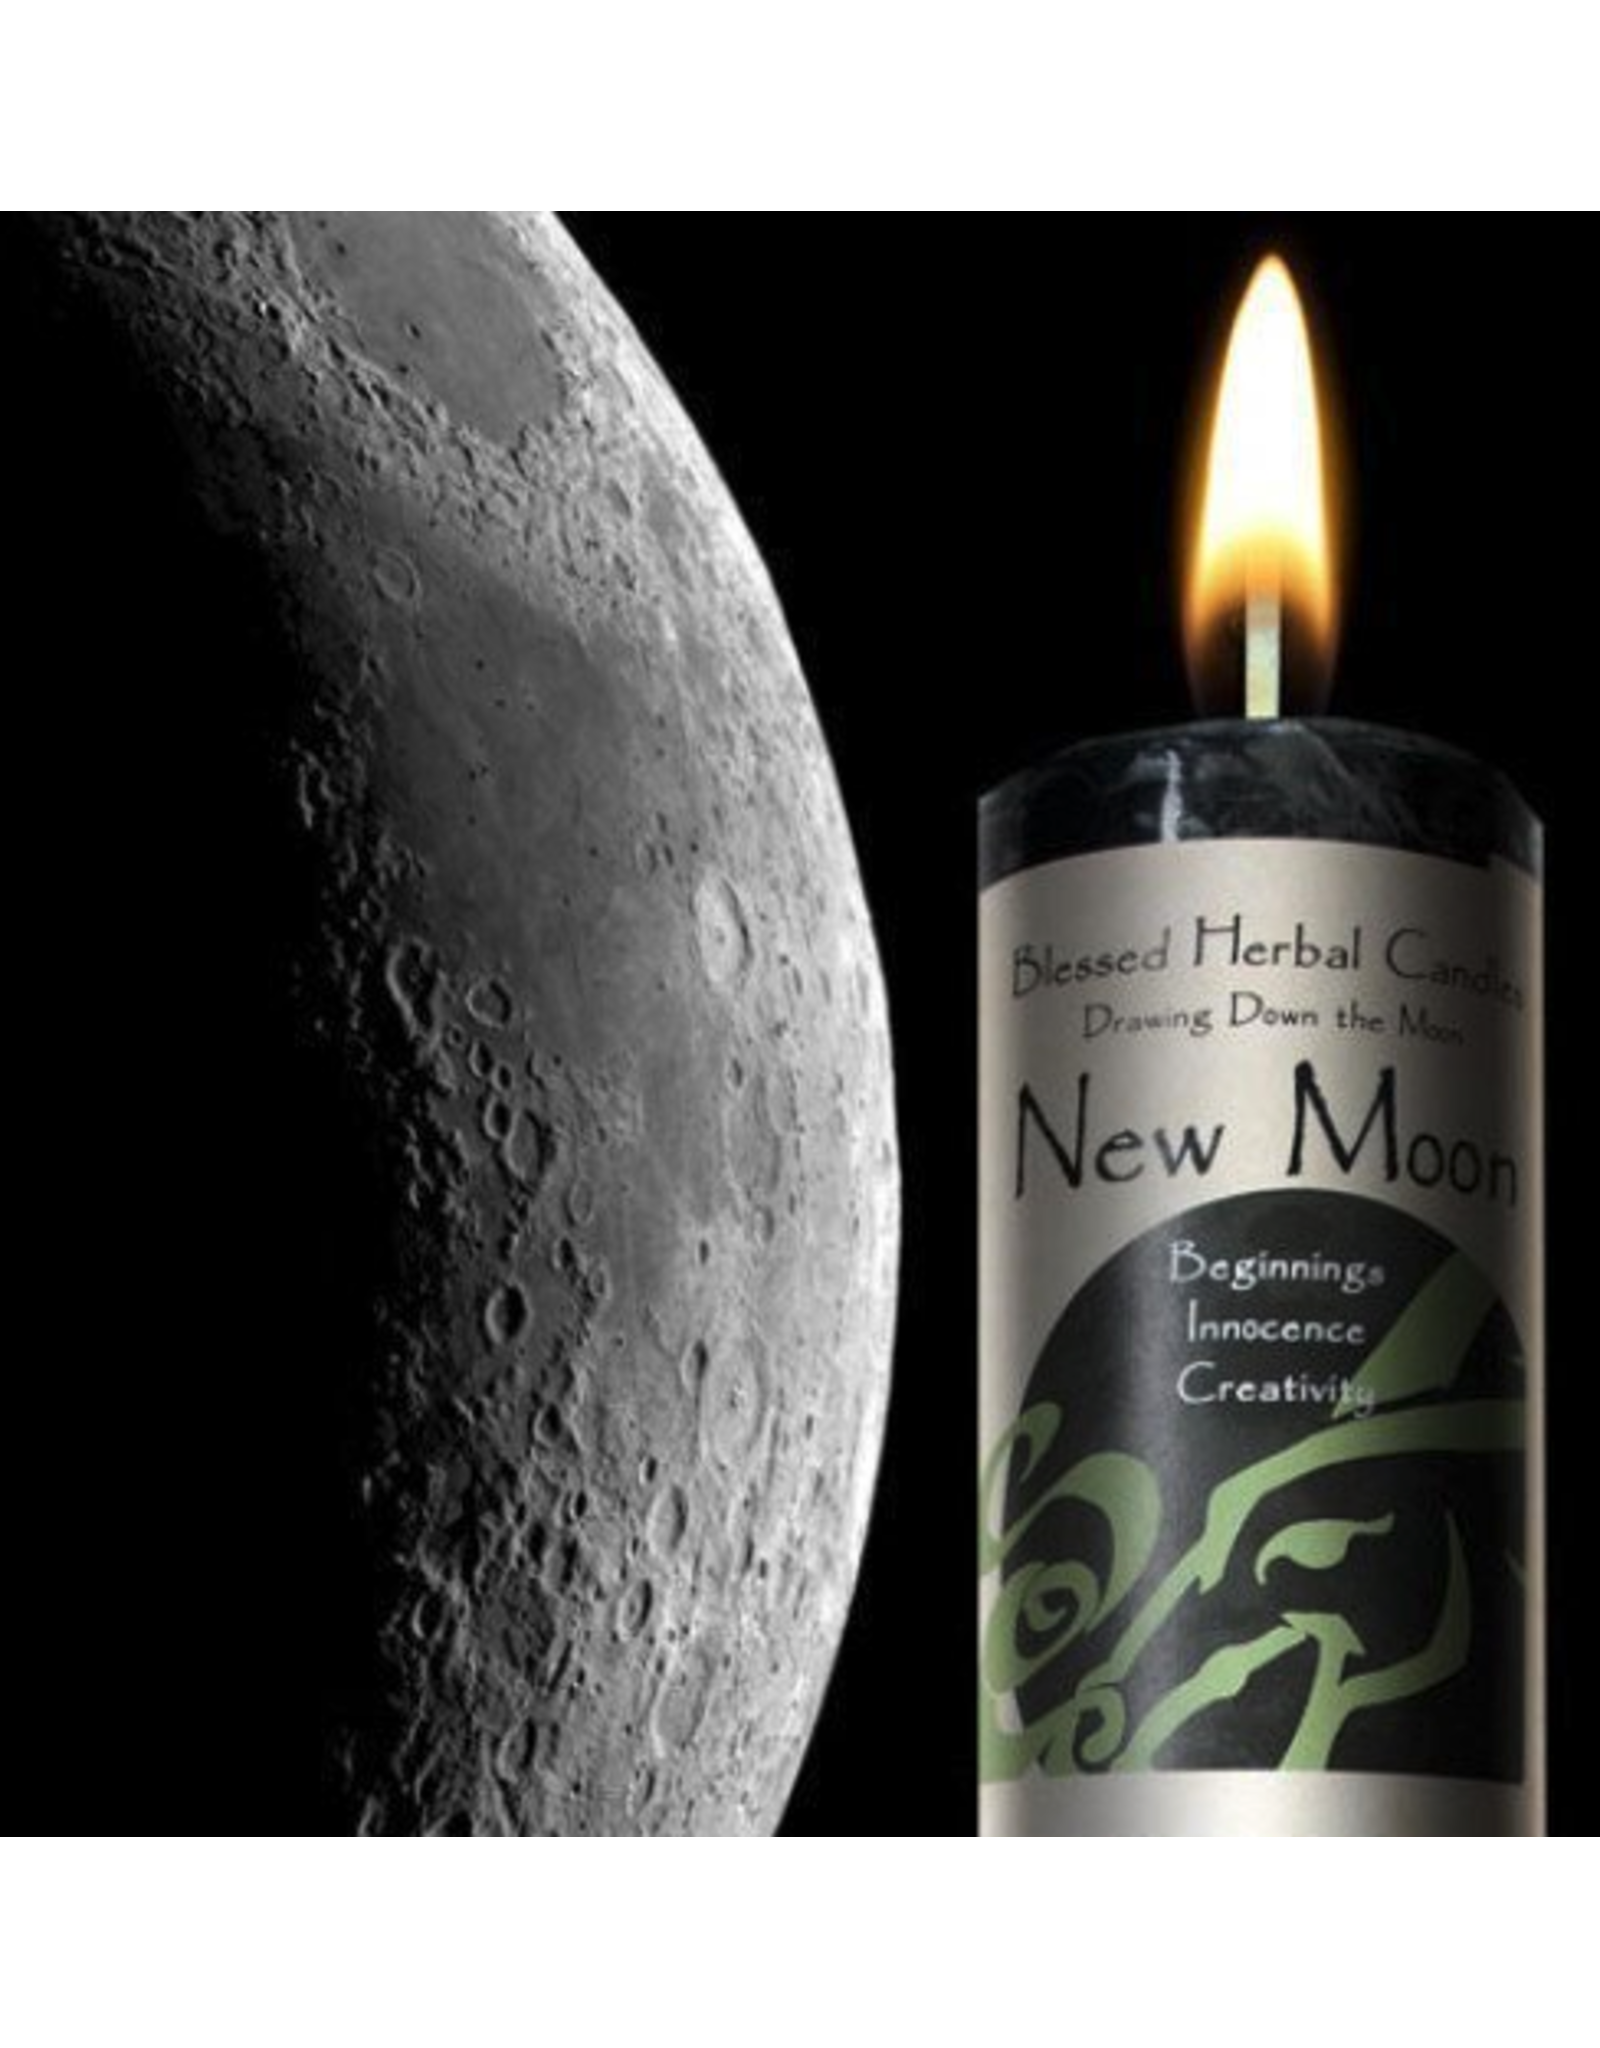 Drawing Down the Moon Candle